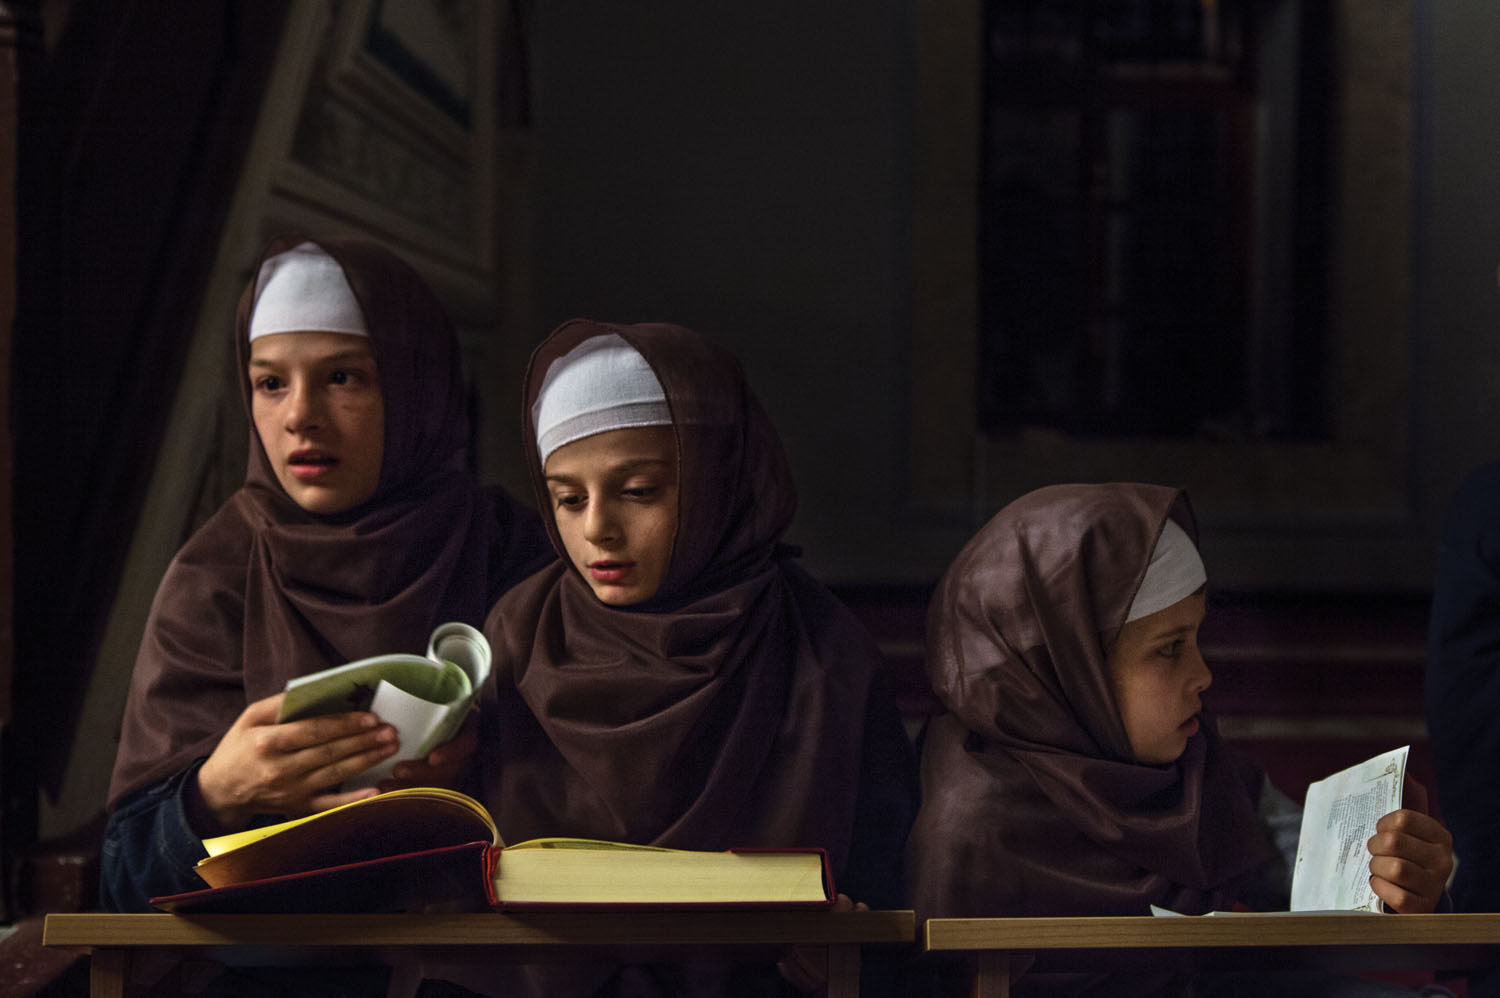 Albanian children studying the Koran. Kosovo. 2013.